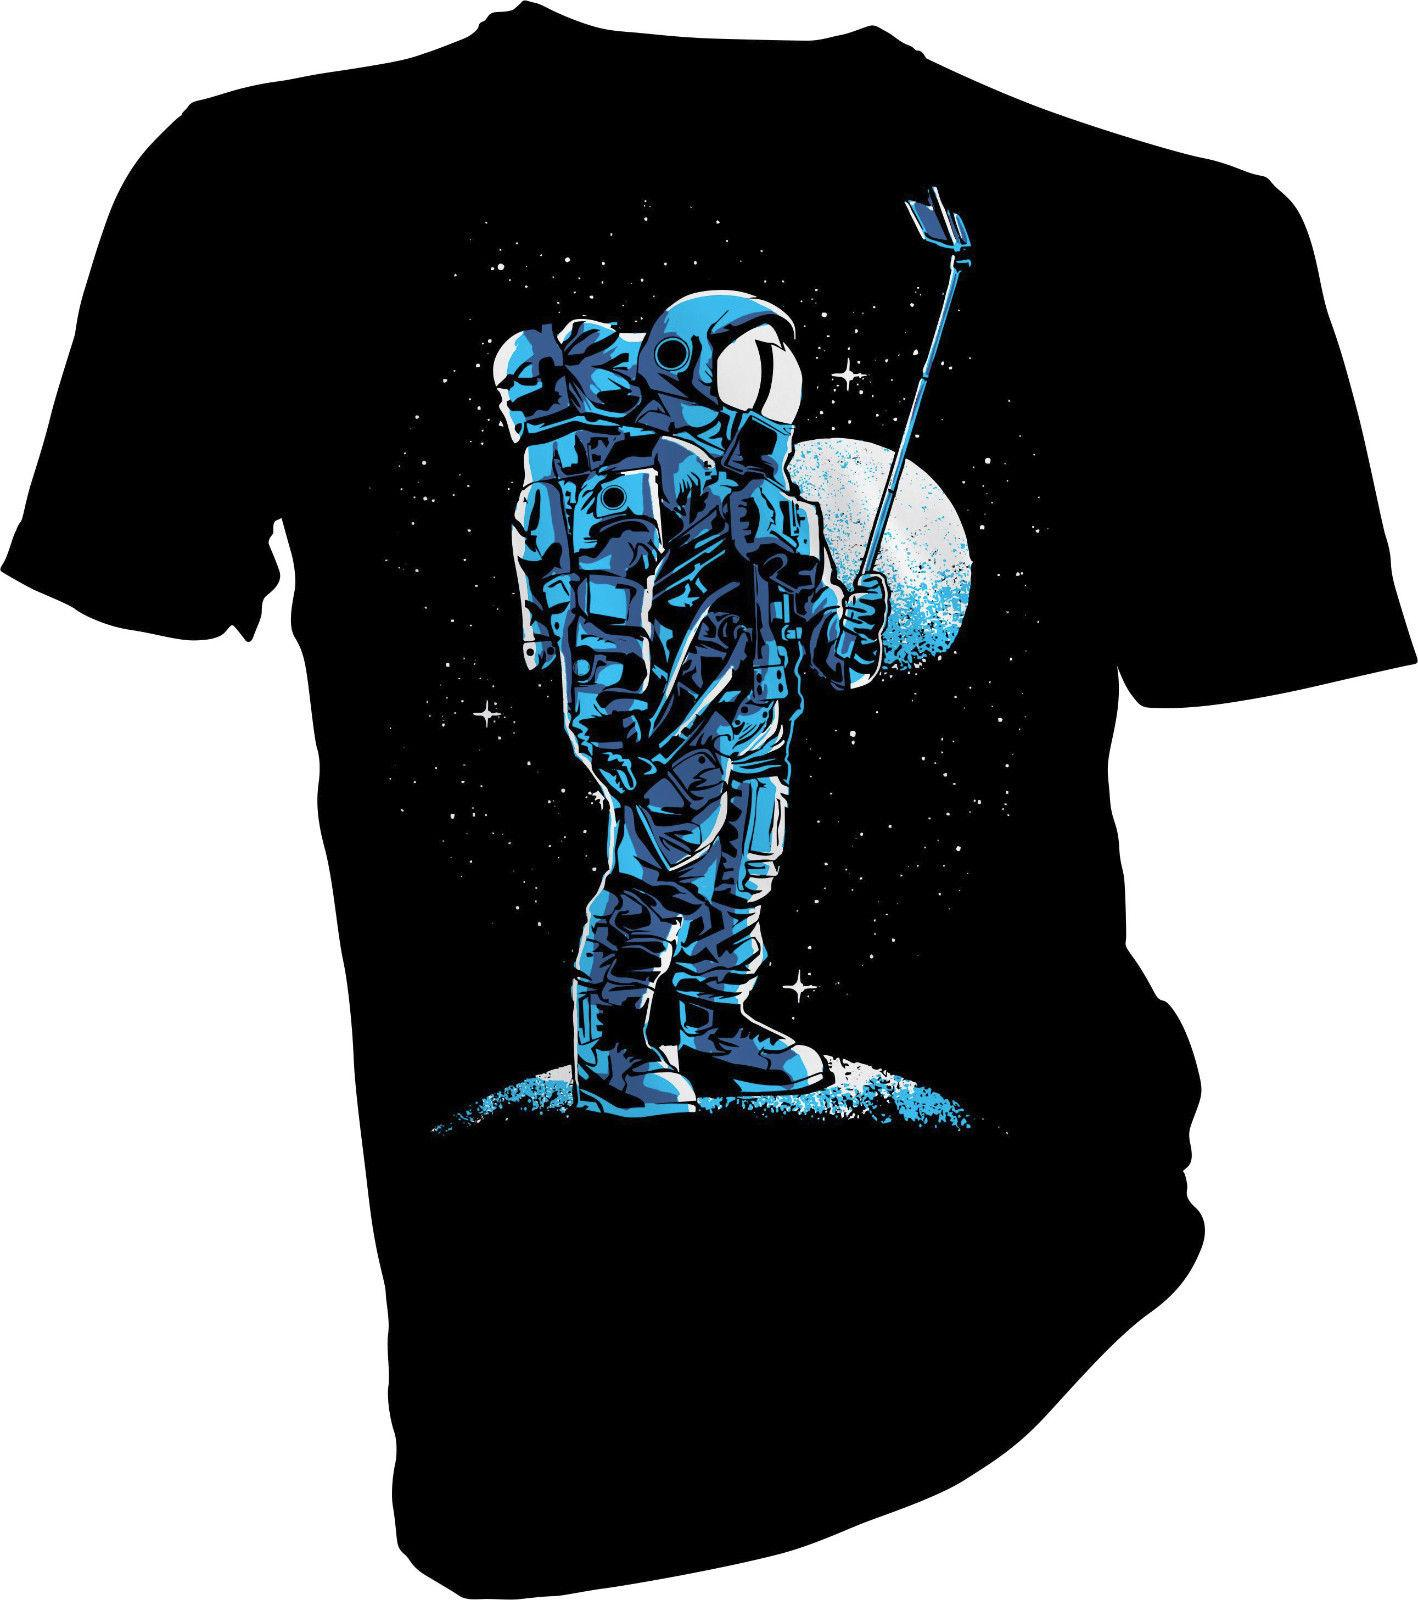 c83bd003 Selfie Astronaut, Galaxy, Space, NASA Moon, Selfie Stick Adult & Kids T  Shirt Crazy T Shirts T Shirt Prints From Lifestyletshirt, $11.01| DHgate.Com